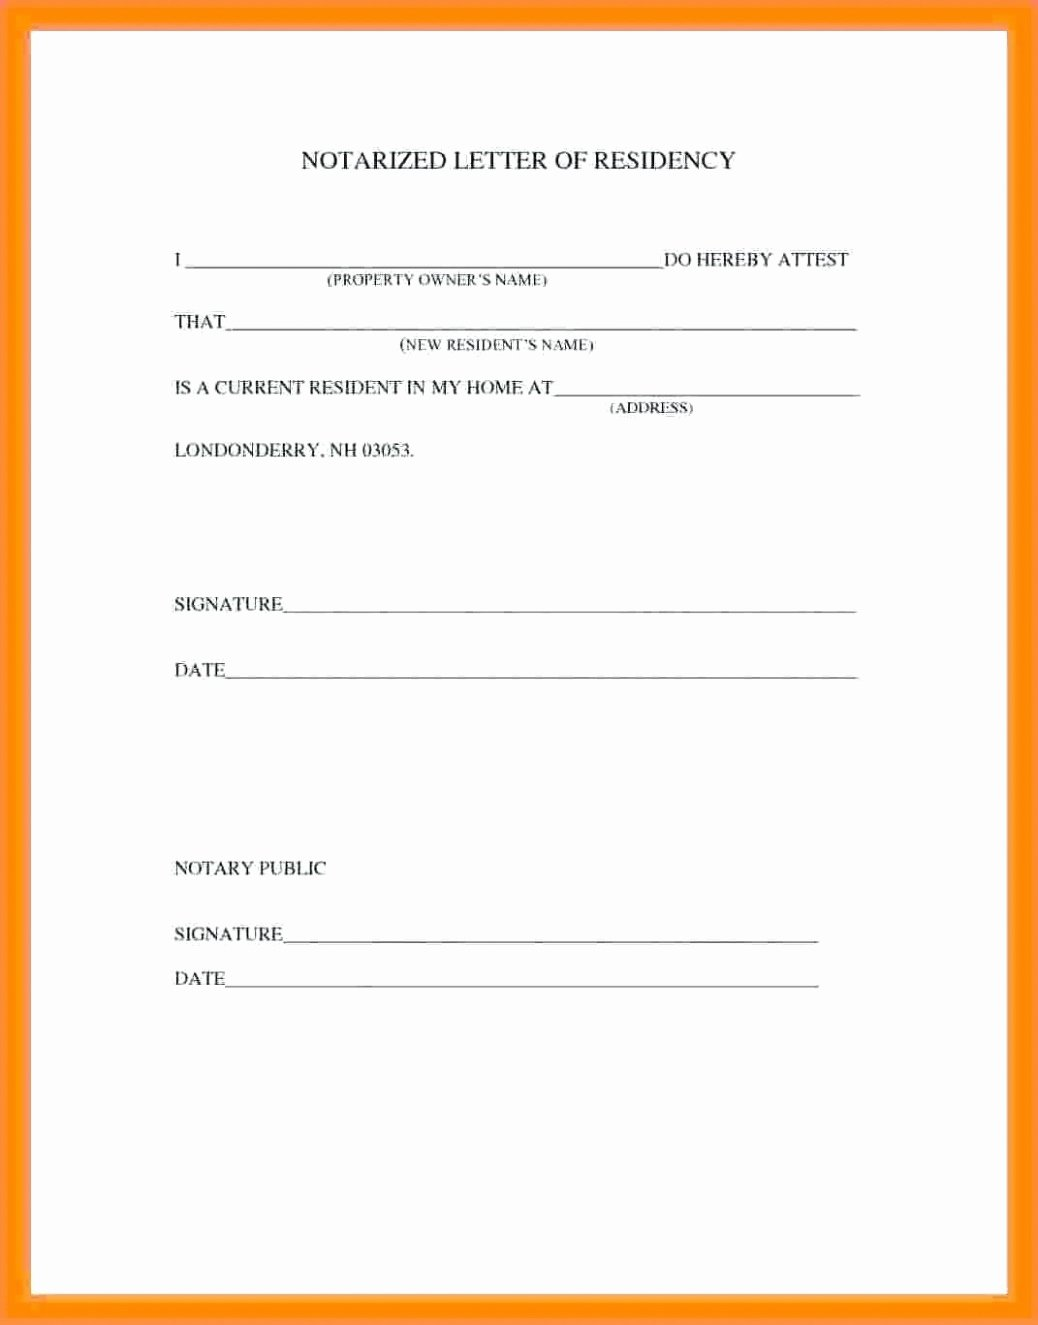 Printable Notarized Letter Of Residency Template Elegant Notarized Letter Template for Residency Gallery